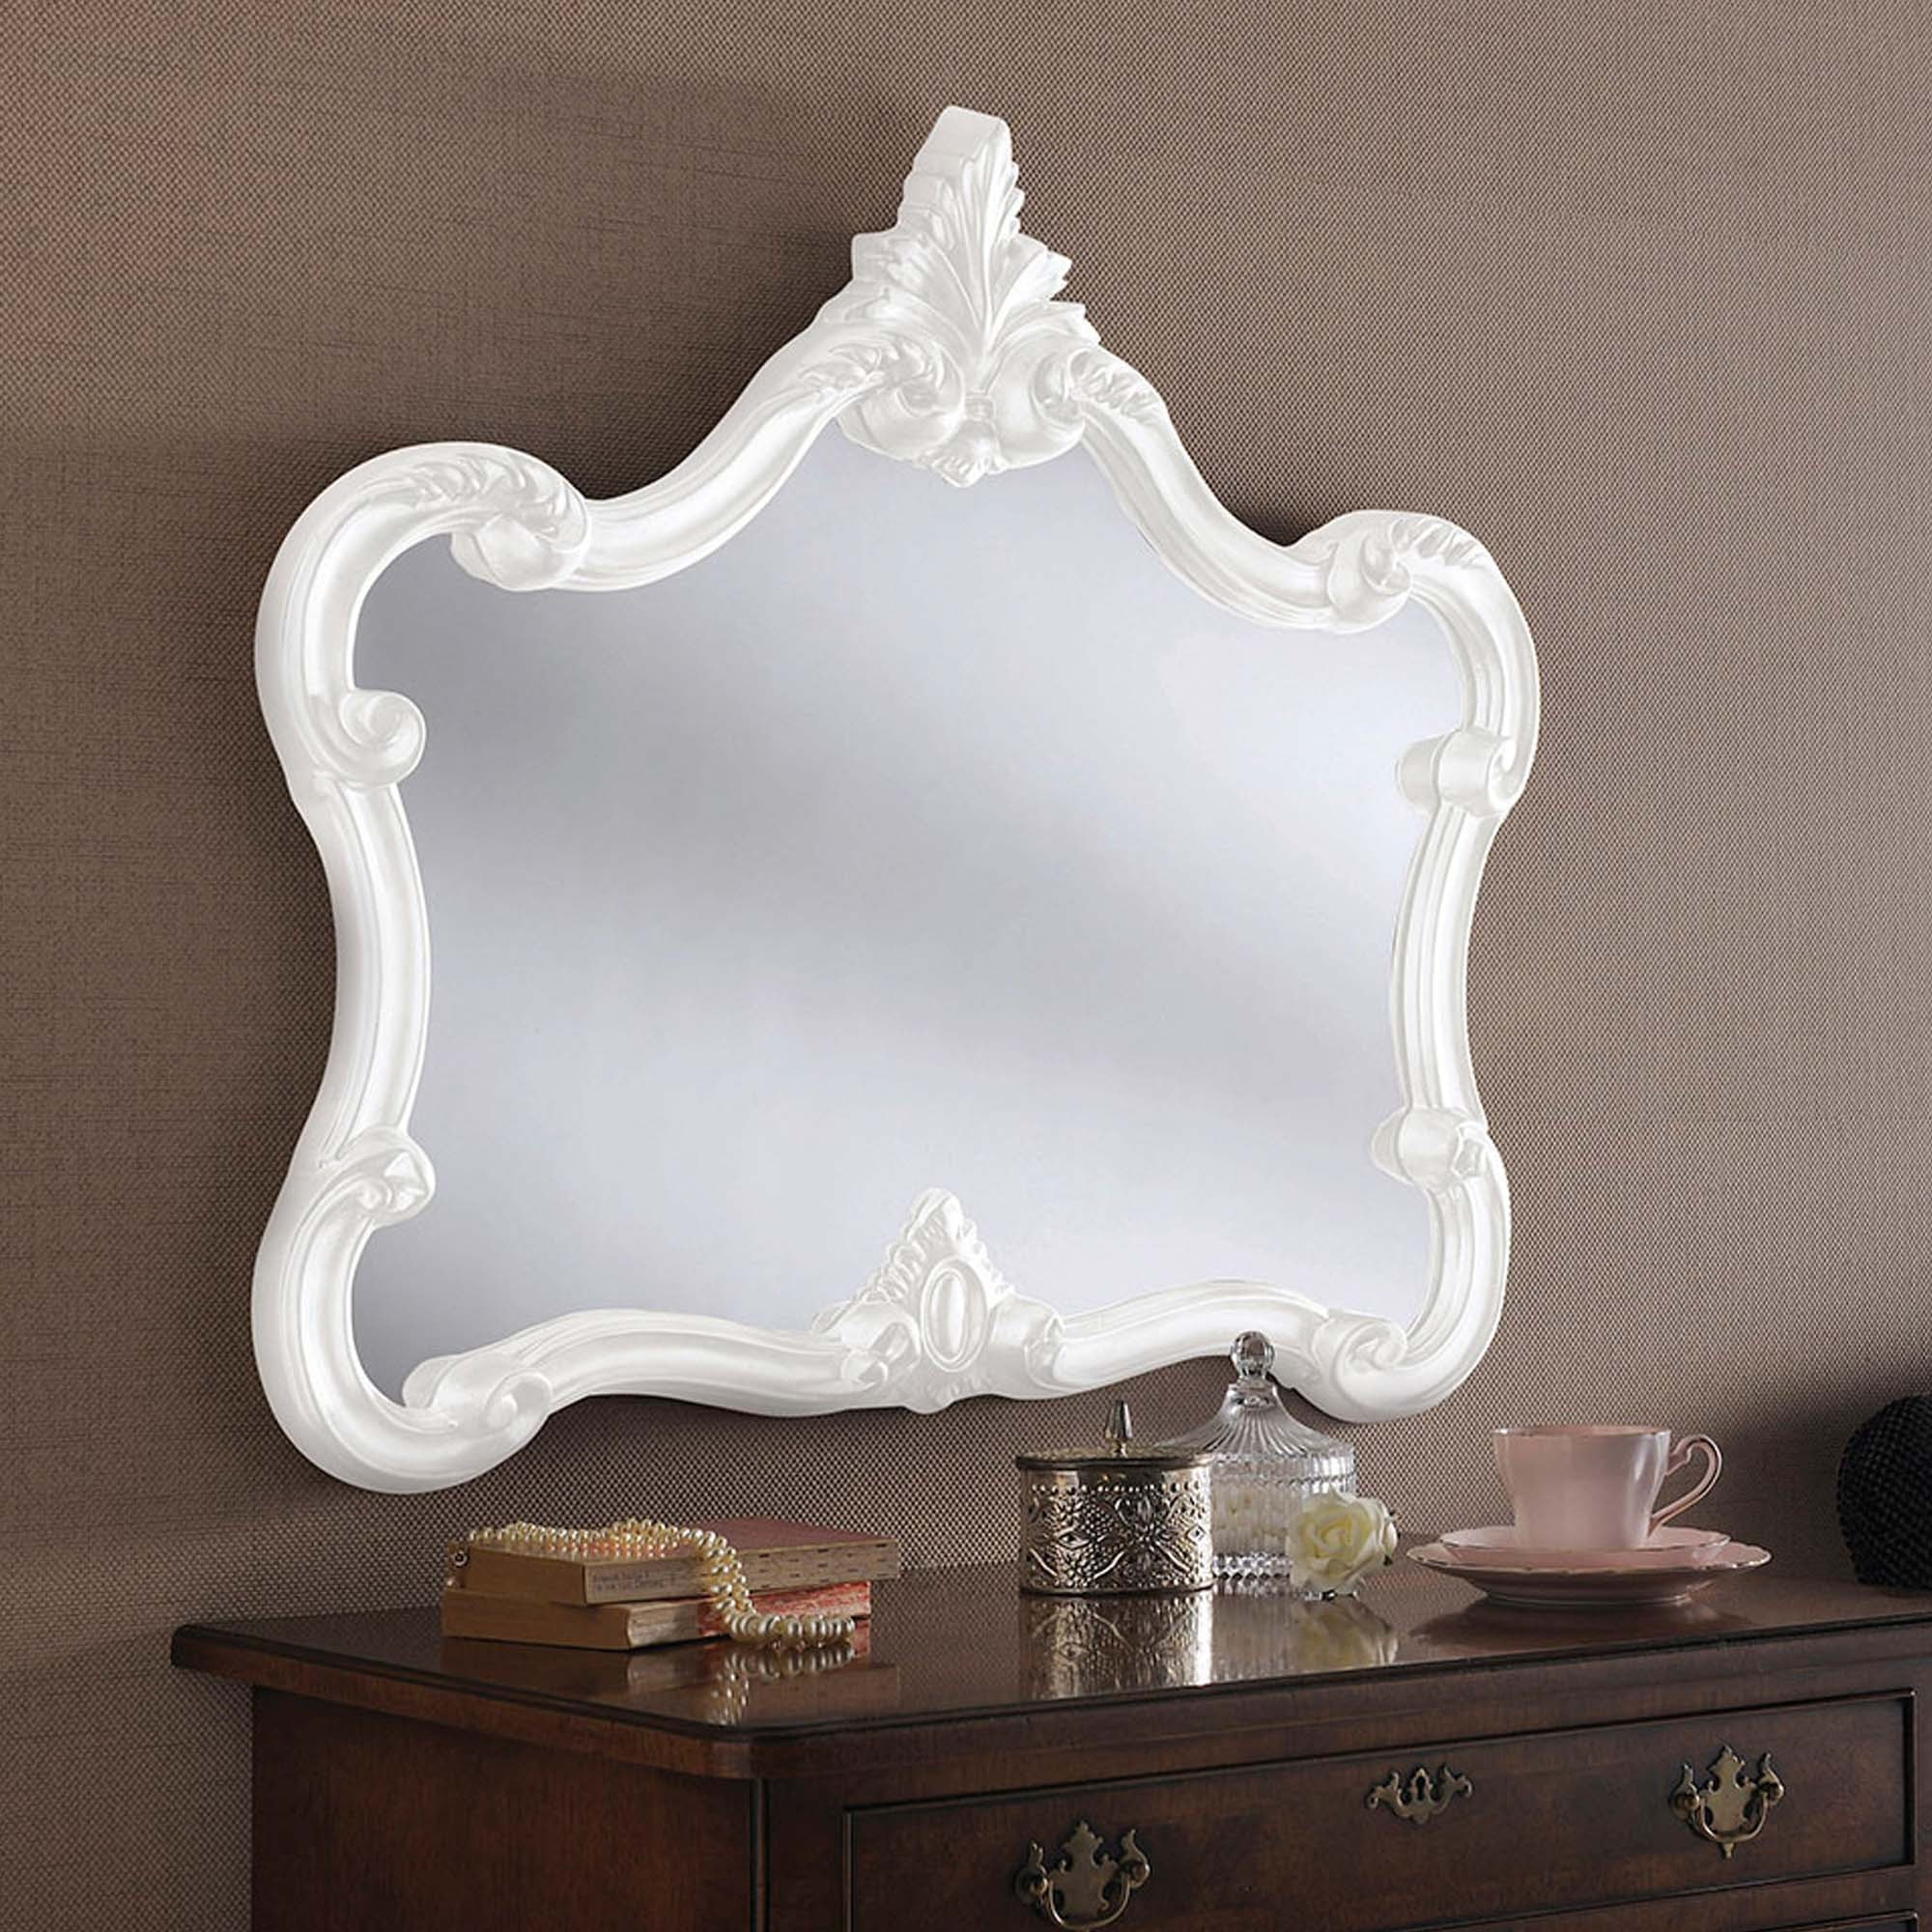 Antique French Style White Ornate Wall Mirror Wall Mirrors